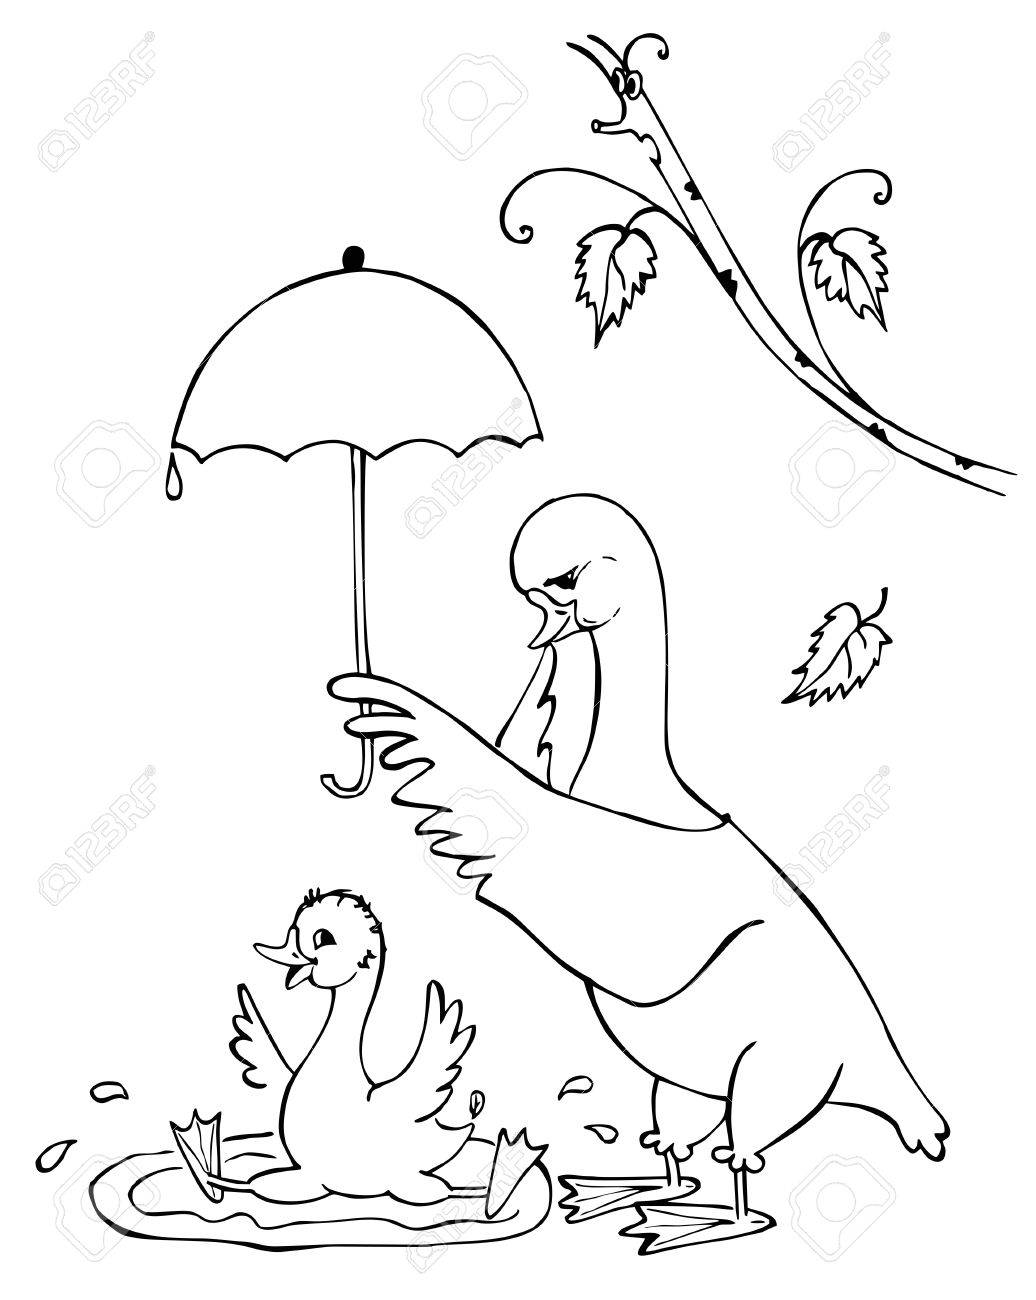 Coloring Book Mother Goose Holds An Umbrella Over Her Son Who Bathes Black And White Illustration